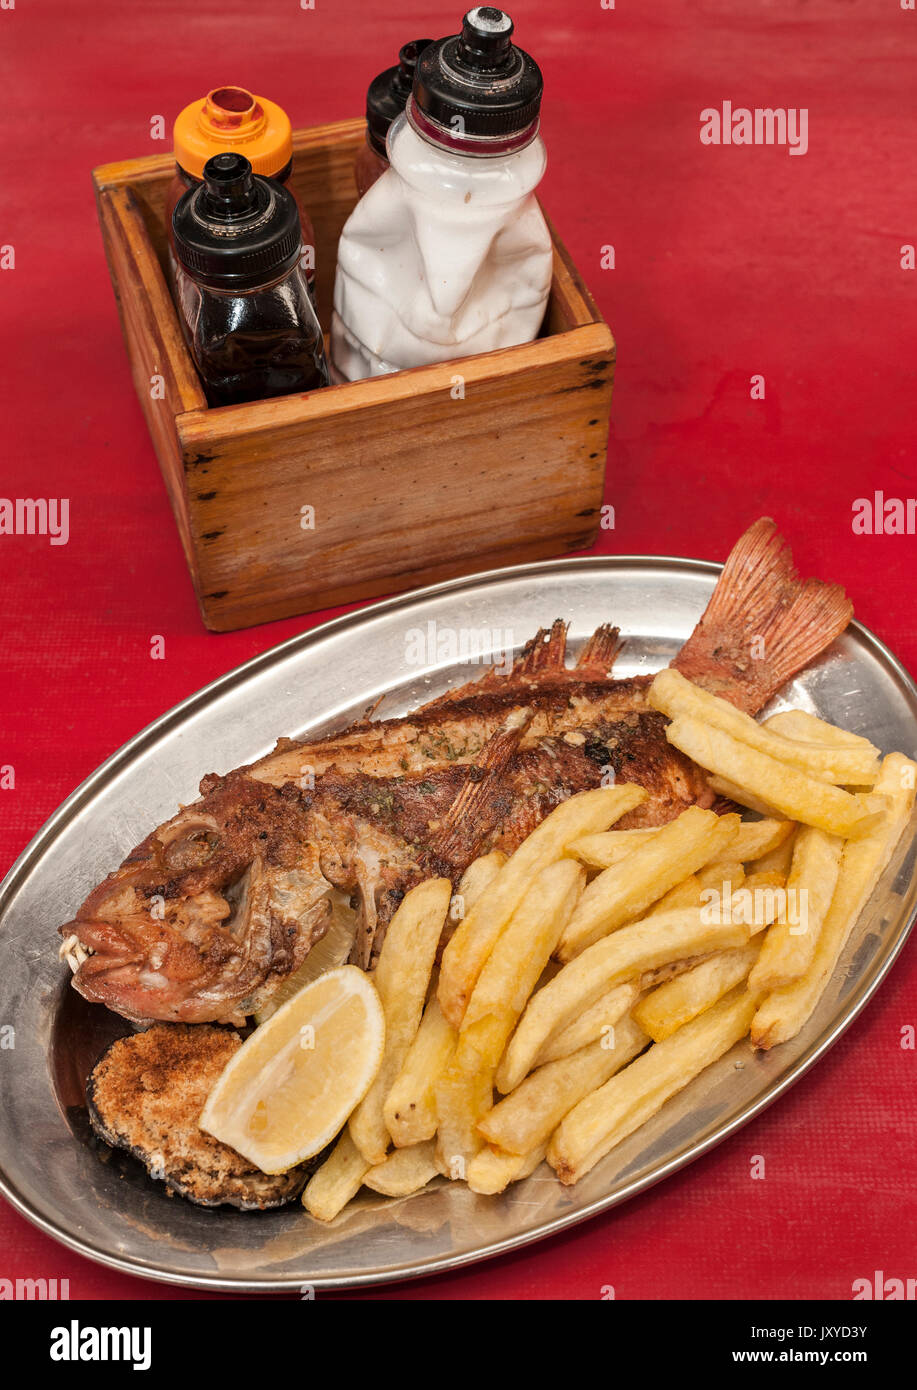 Grilled Red Roman fish as served at Kalky's restaurant in Kalk Bay, Cape Town. - Stock Image